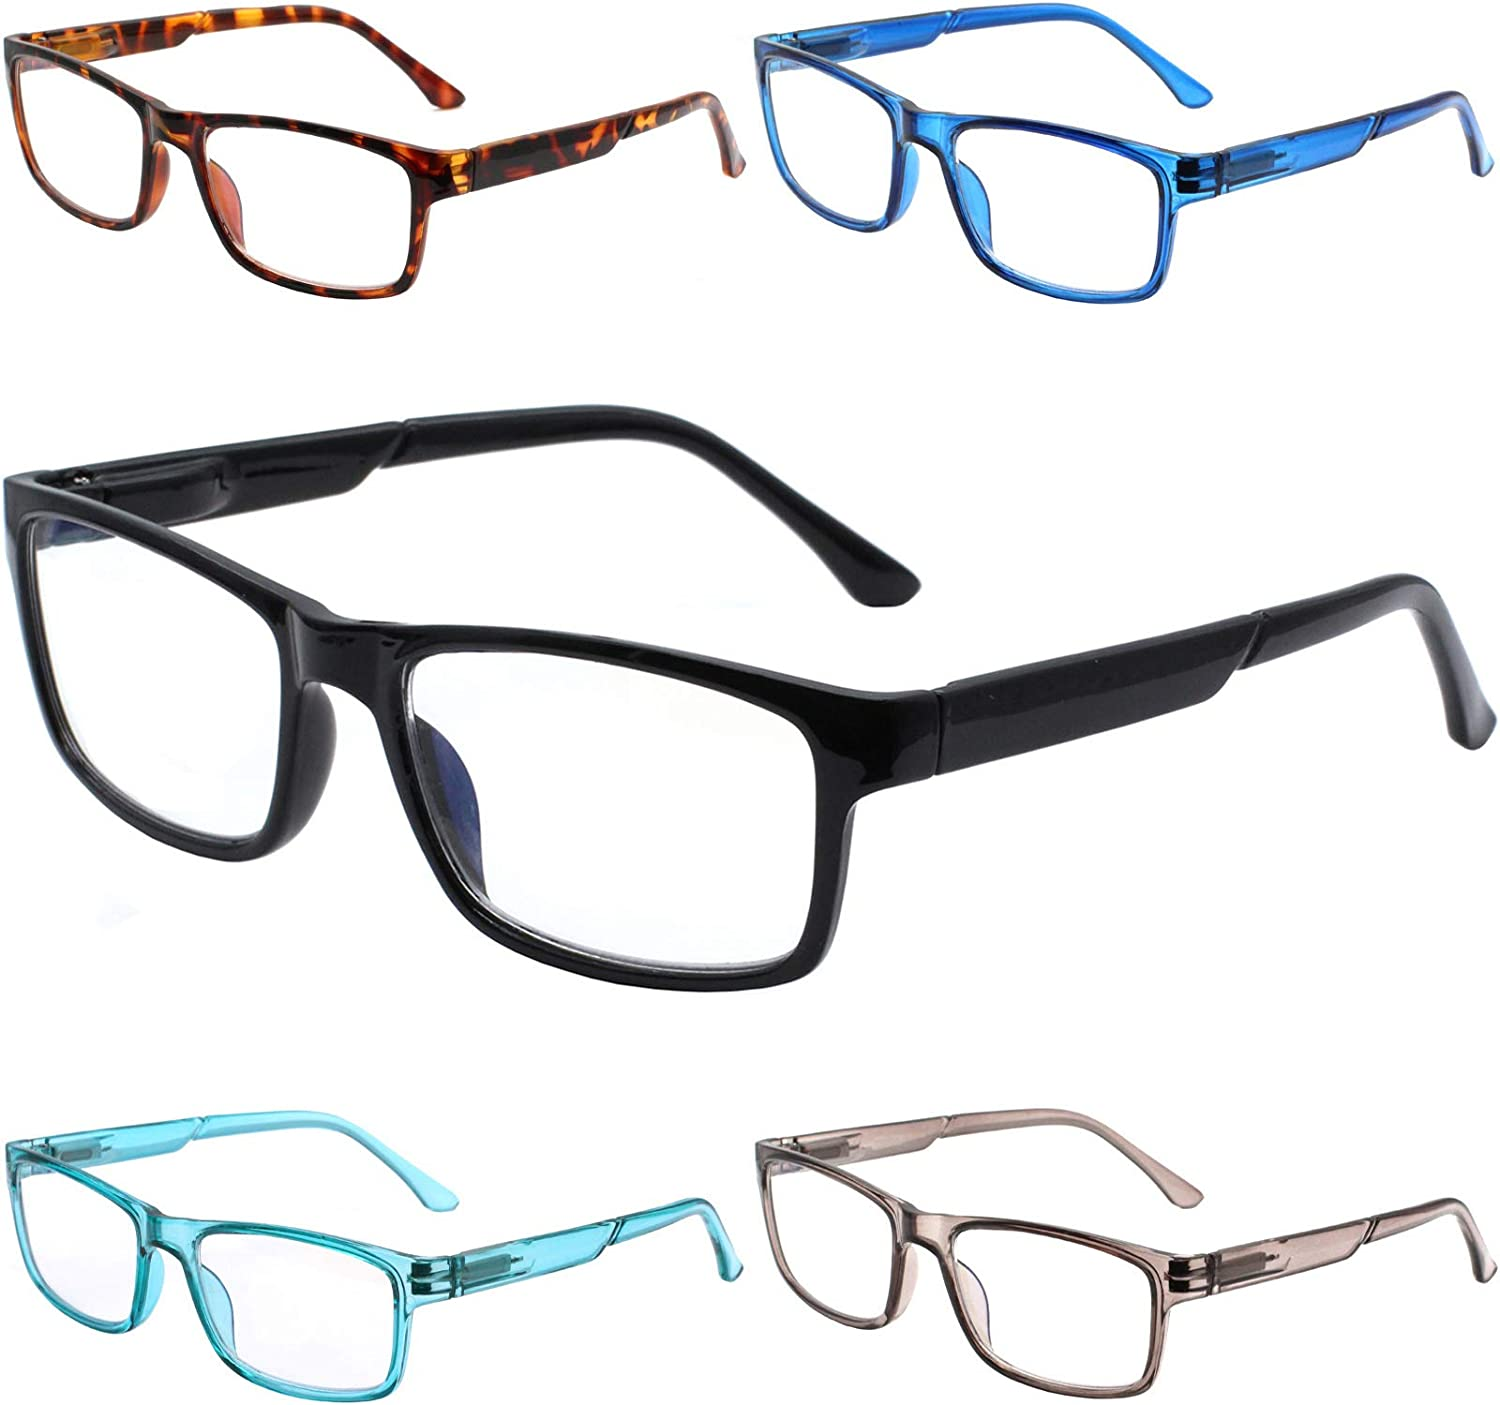 SIGVAN 5 Pack Blue Light Blocking Reading Glasses for Women,Computer Readers Spring Hinge Fashion Anti blue Eyeglasses